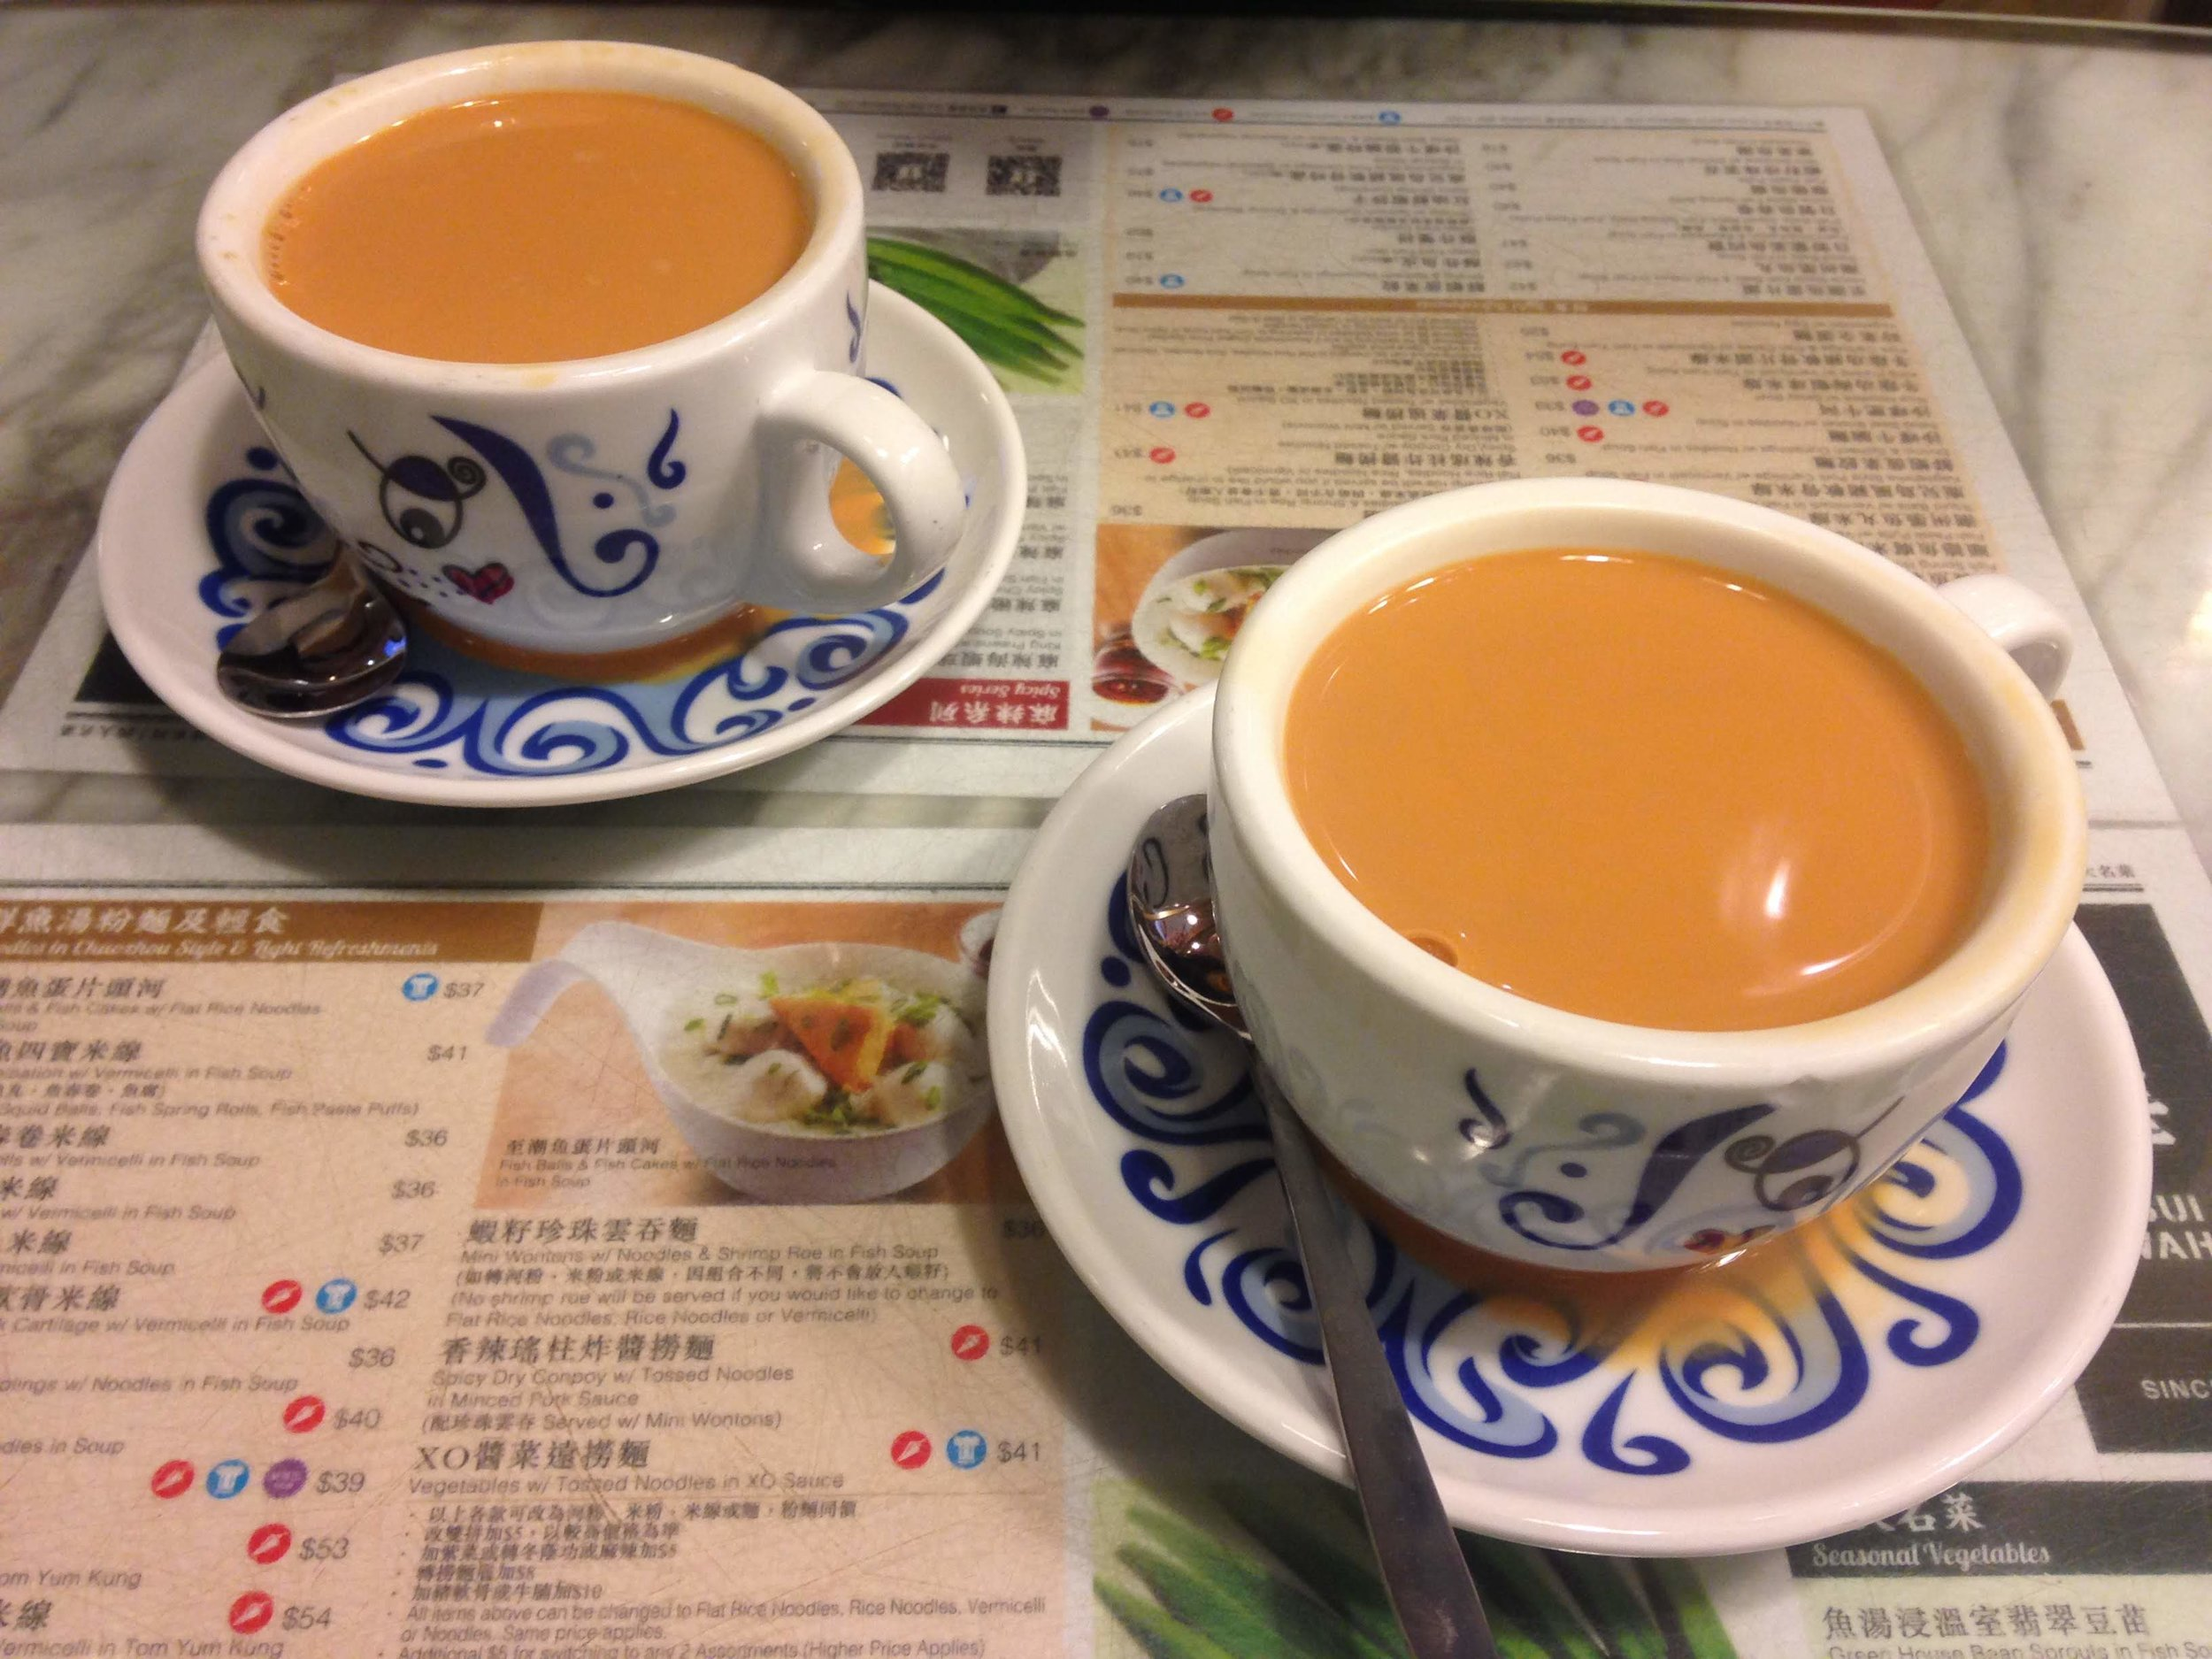 a more traditional cup of Hong Kong Milk Tea served at Tsui Wah Restaurant in Kowloon, Hong Kong